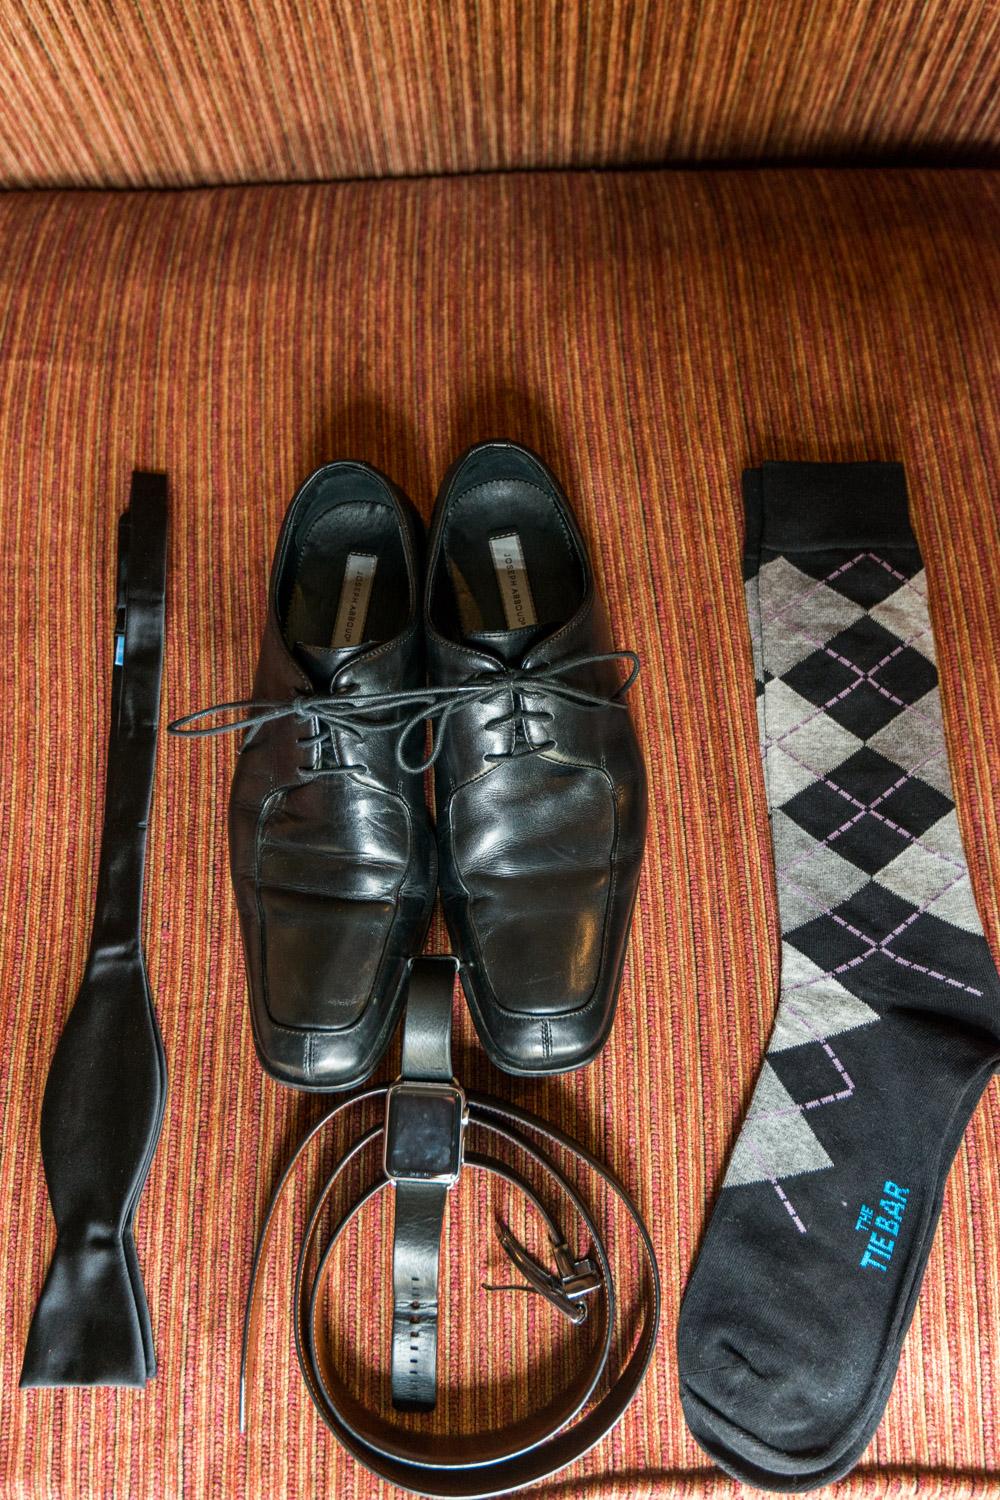 Groom's wedding details with shoes, watch, bowtie, and socks